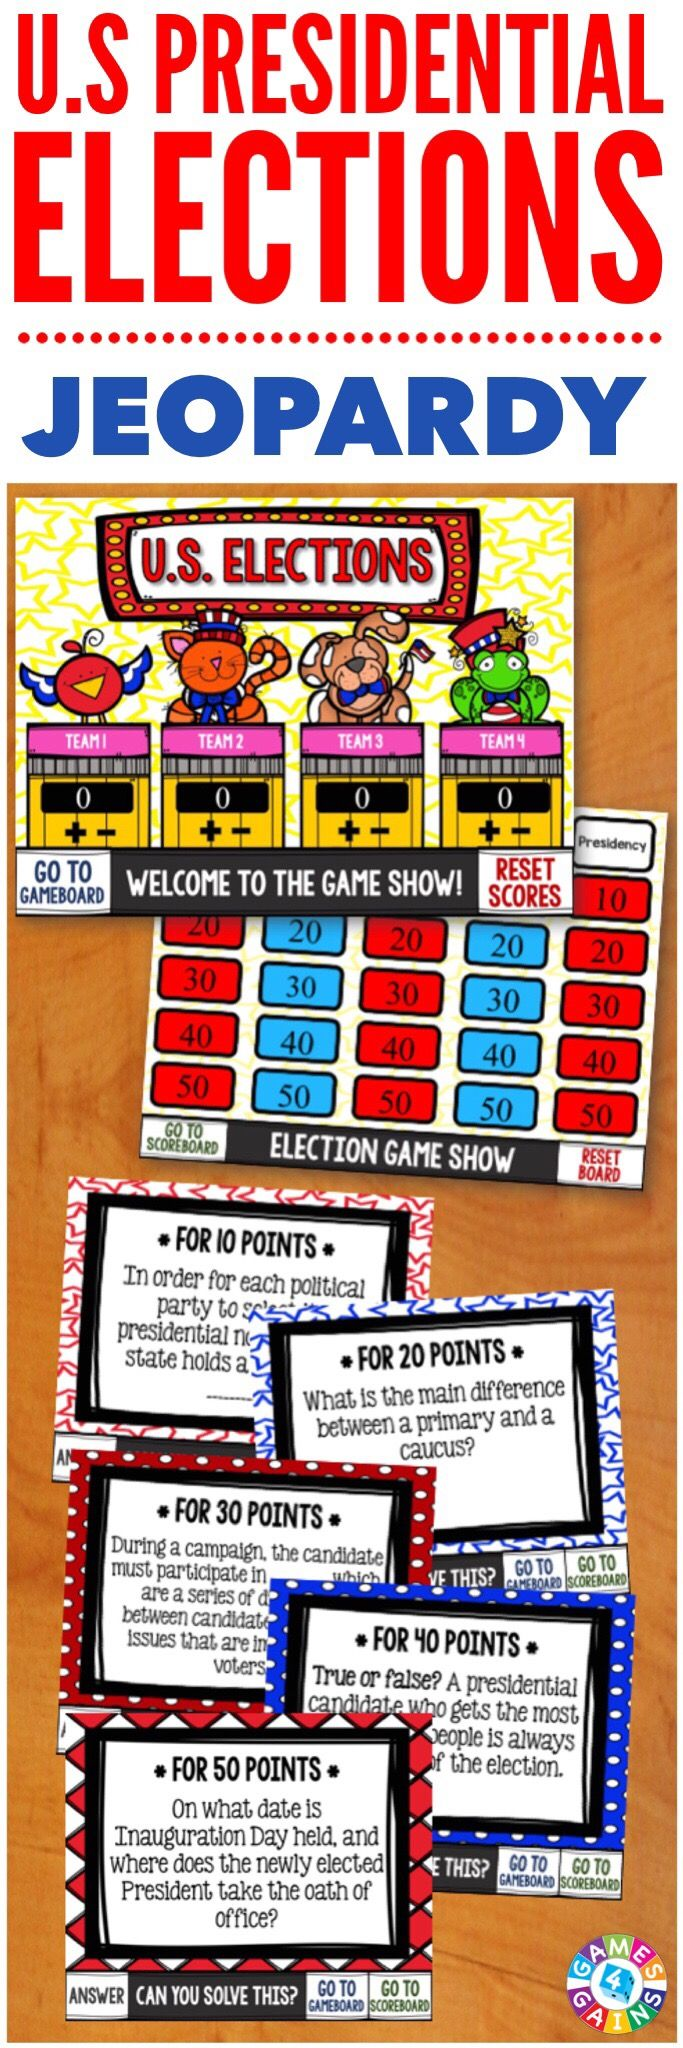 This U.S. Presidential Elections game is the PERFECT way to review the key components of the election process that I've been teaching my students!  This Jeopardy-style game includes 25 questions about presidential eligibility, the primaries & caucuses, the conventions, voting in the general election, and more!